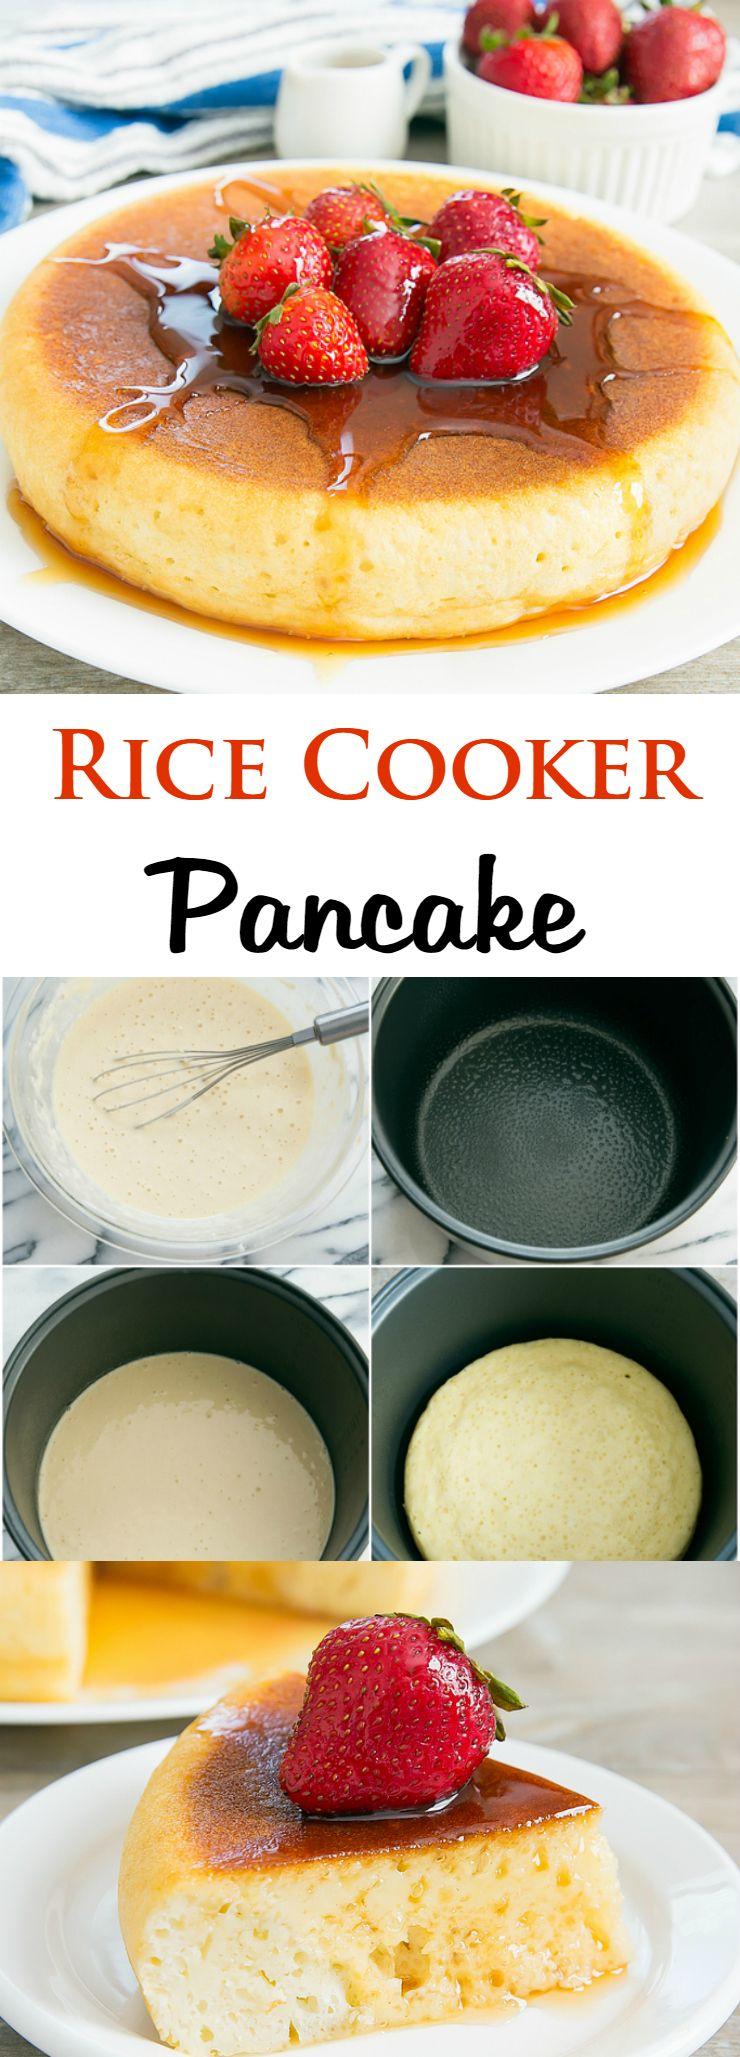 Rice Cooker Pancake Recipe Food Glorious Pinterest Tiger Wiring Diagram This Giant Is Made In The No Need To Stand Over Stove And Flip Your Pancakes Let Do All